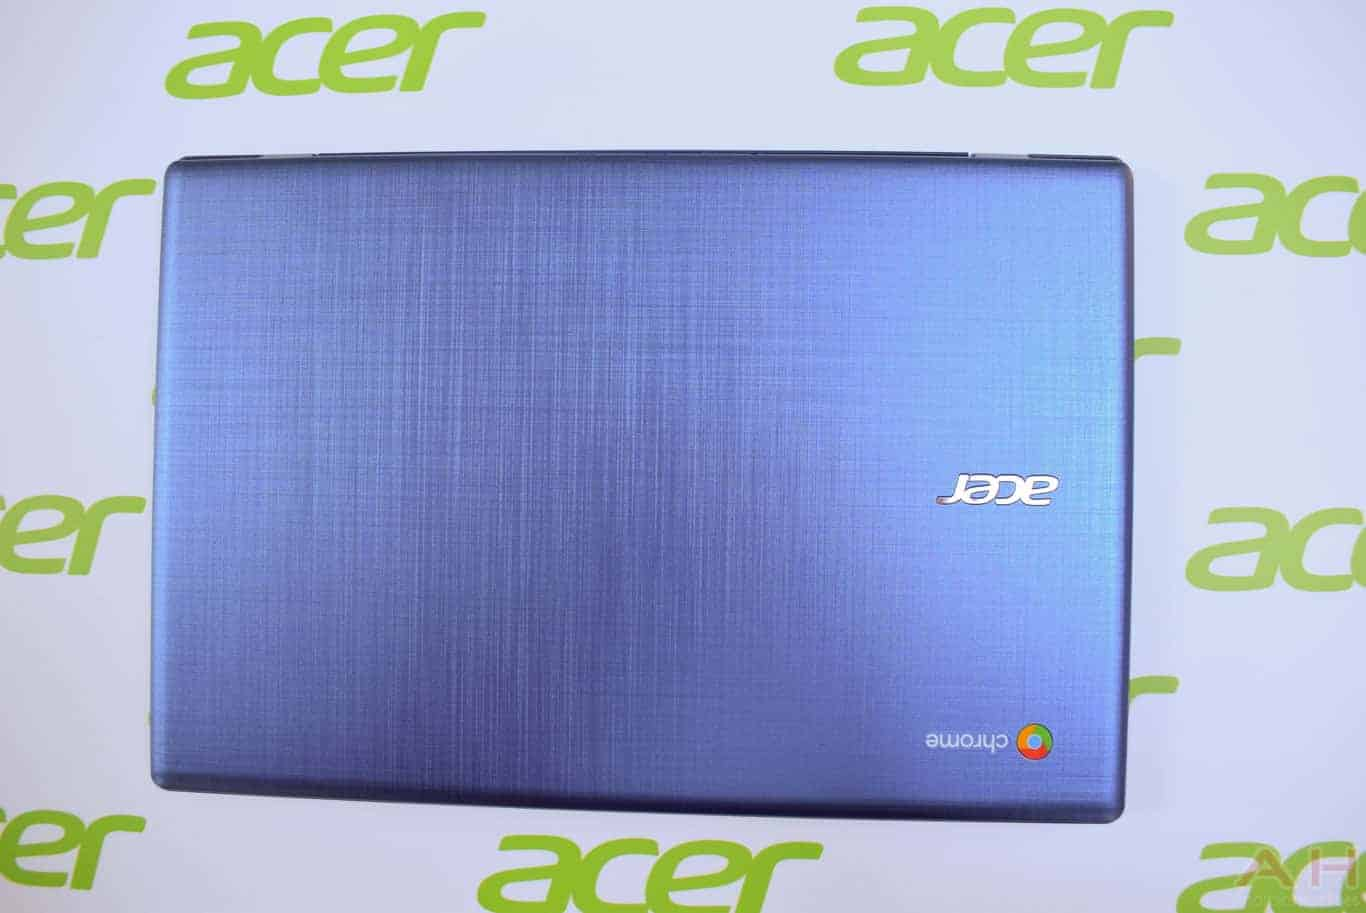 Acer Chromebook 11 CES 2018 AM AH 0020